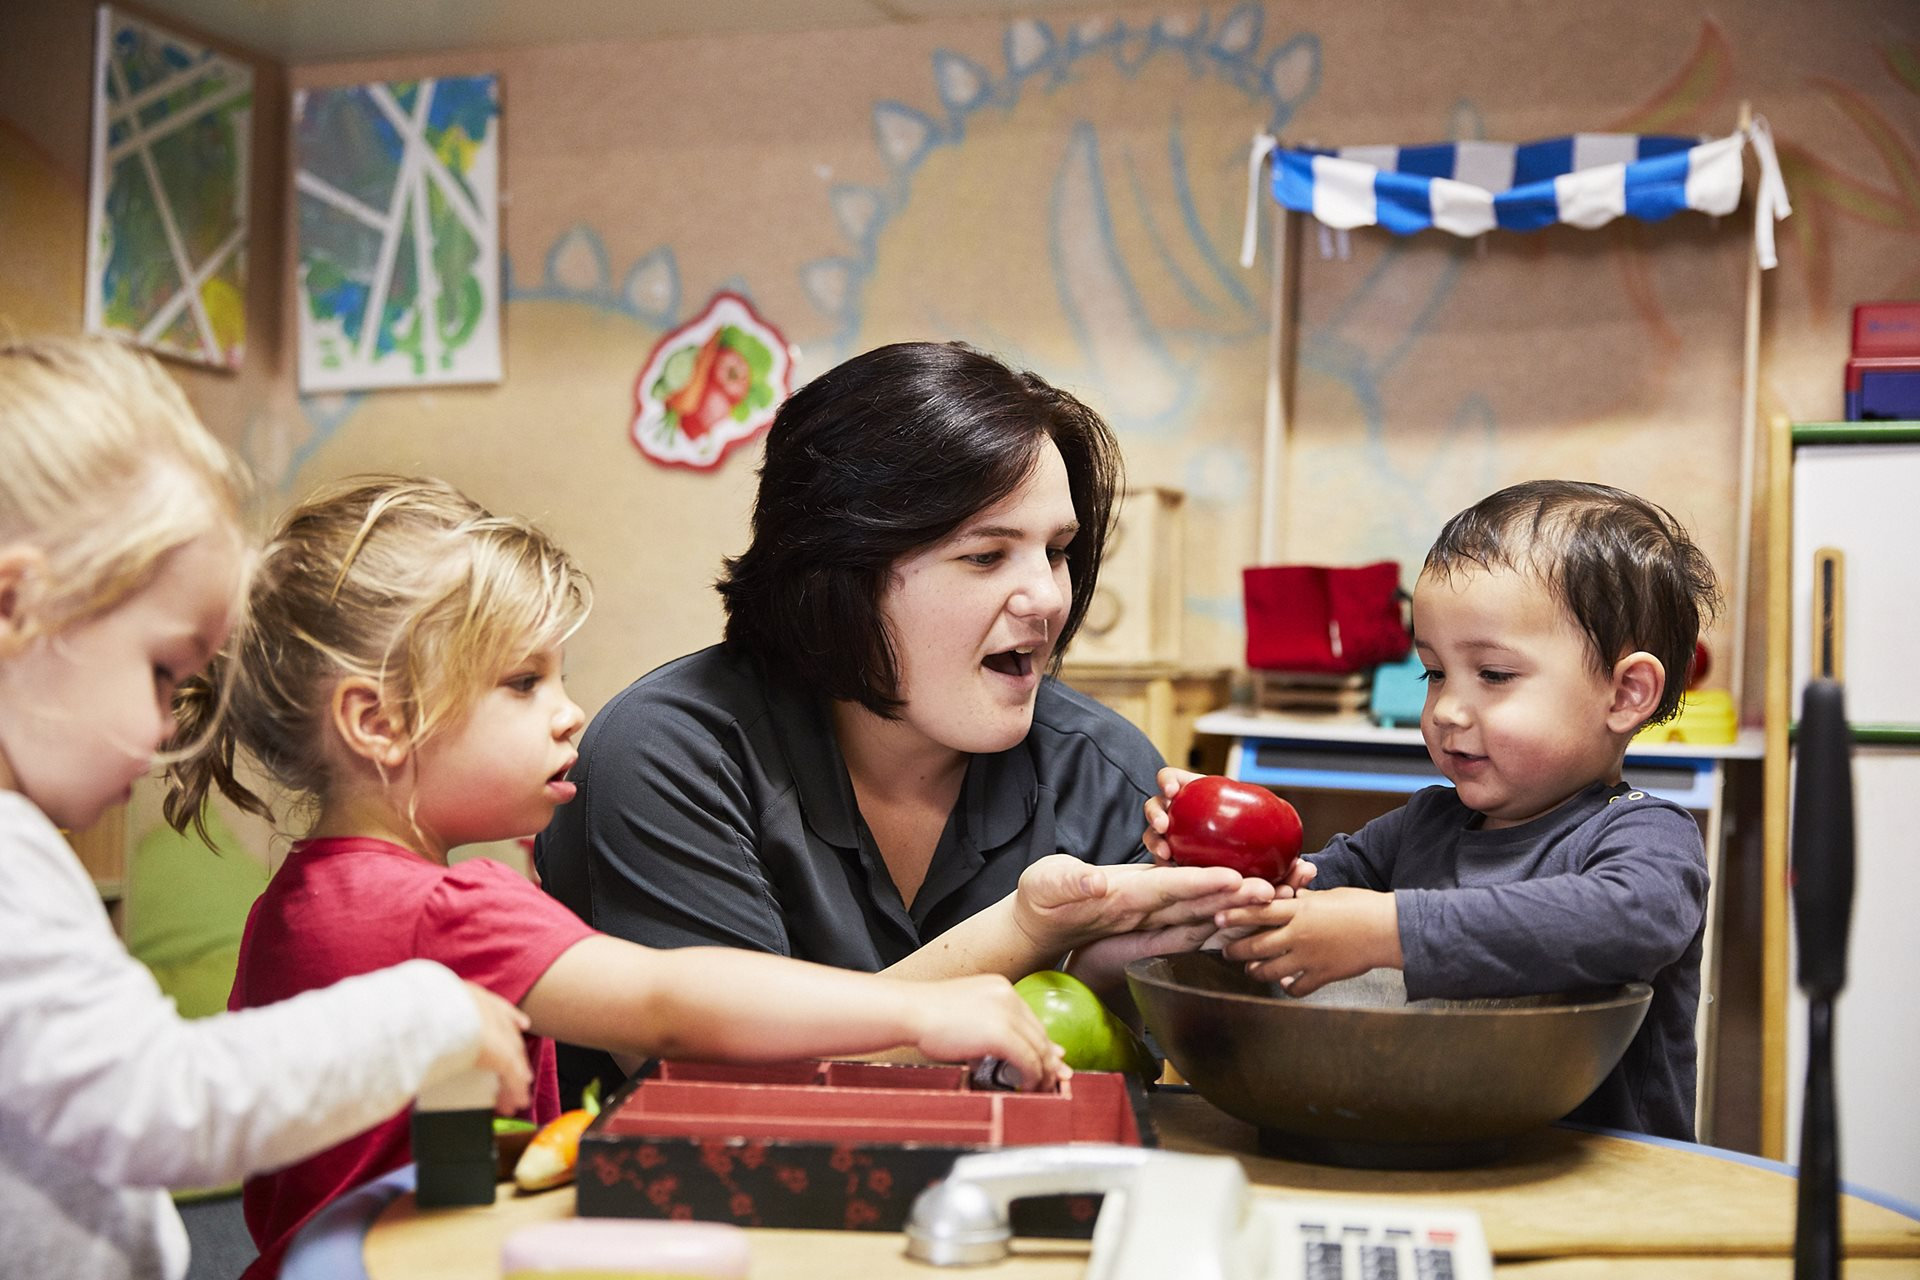 Our Child Care Educators provide individualised care and attention